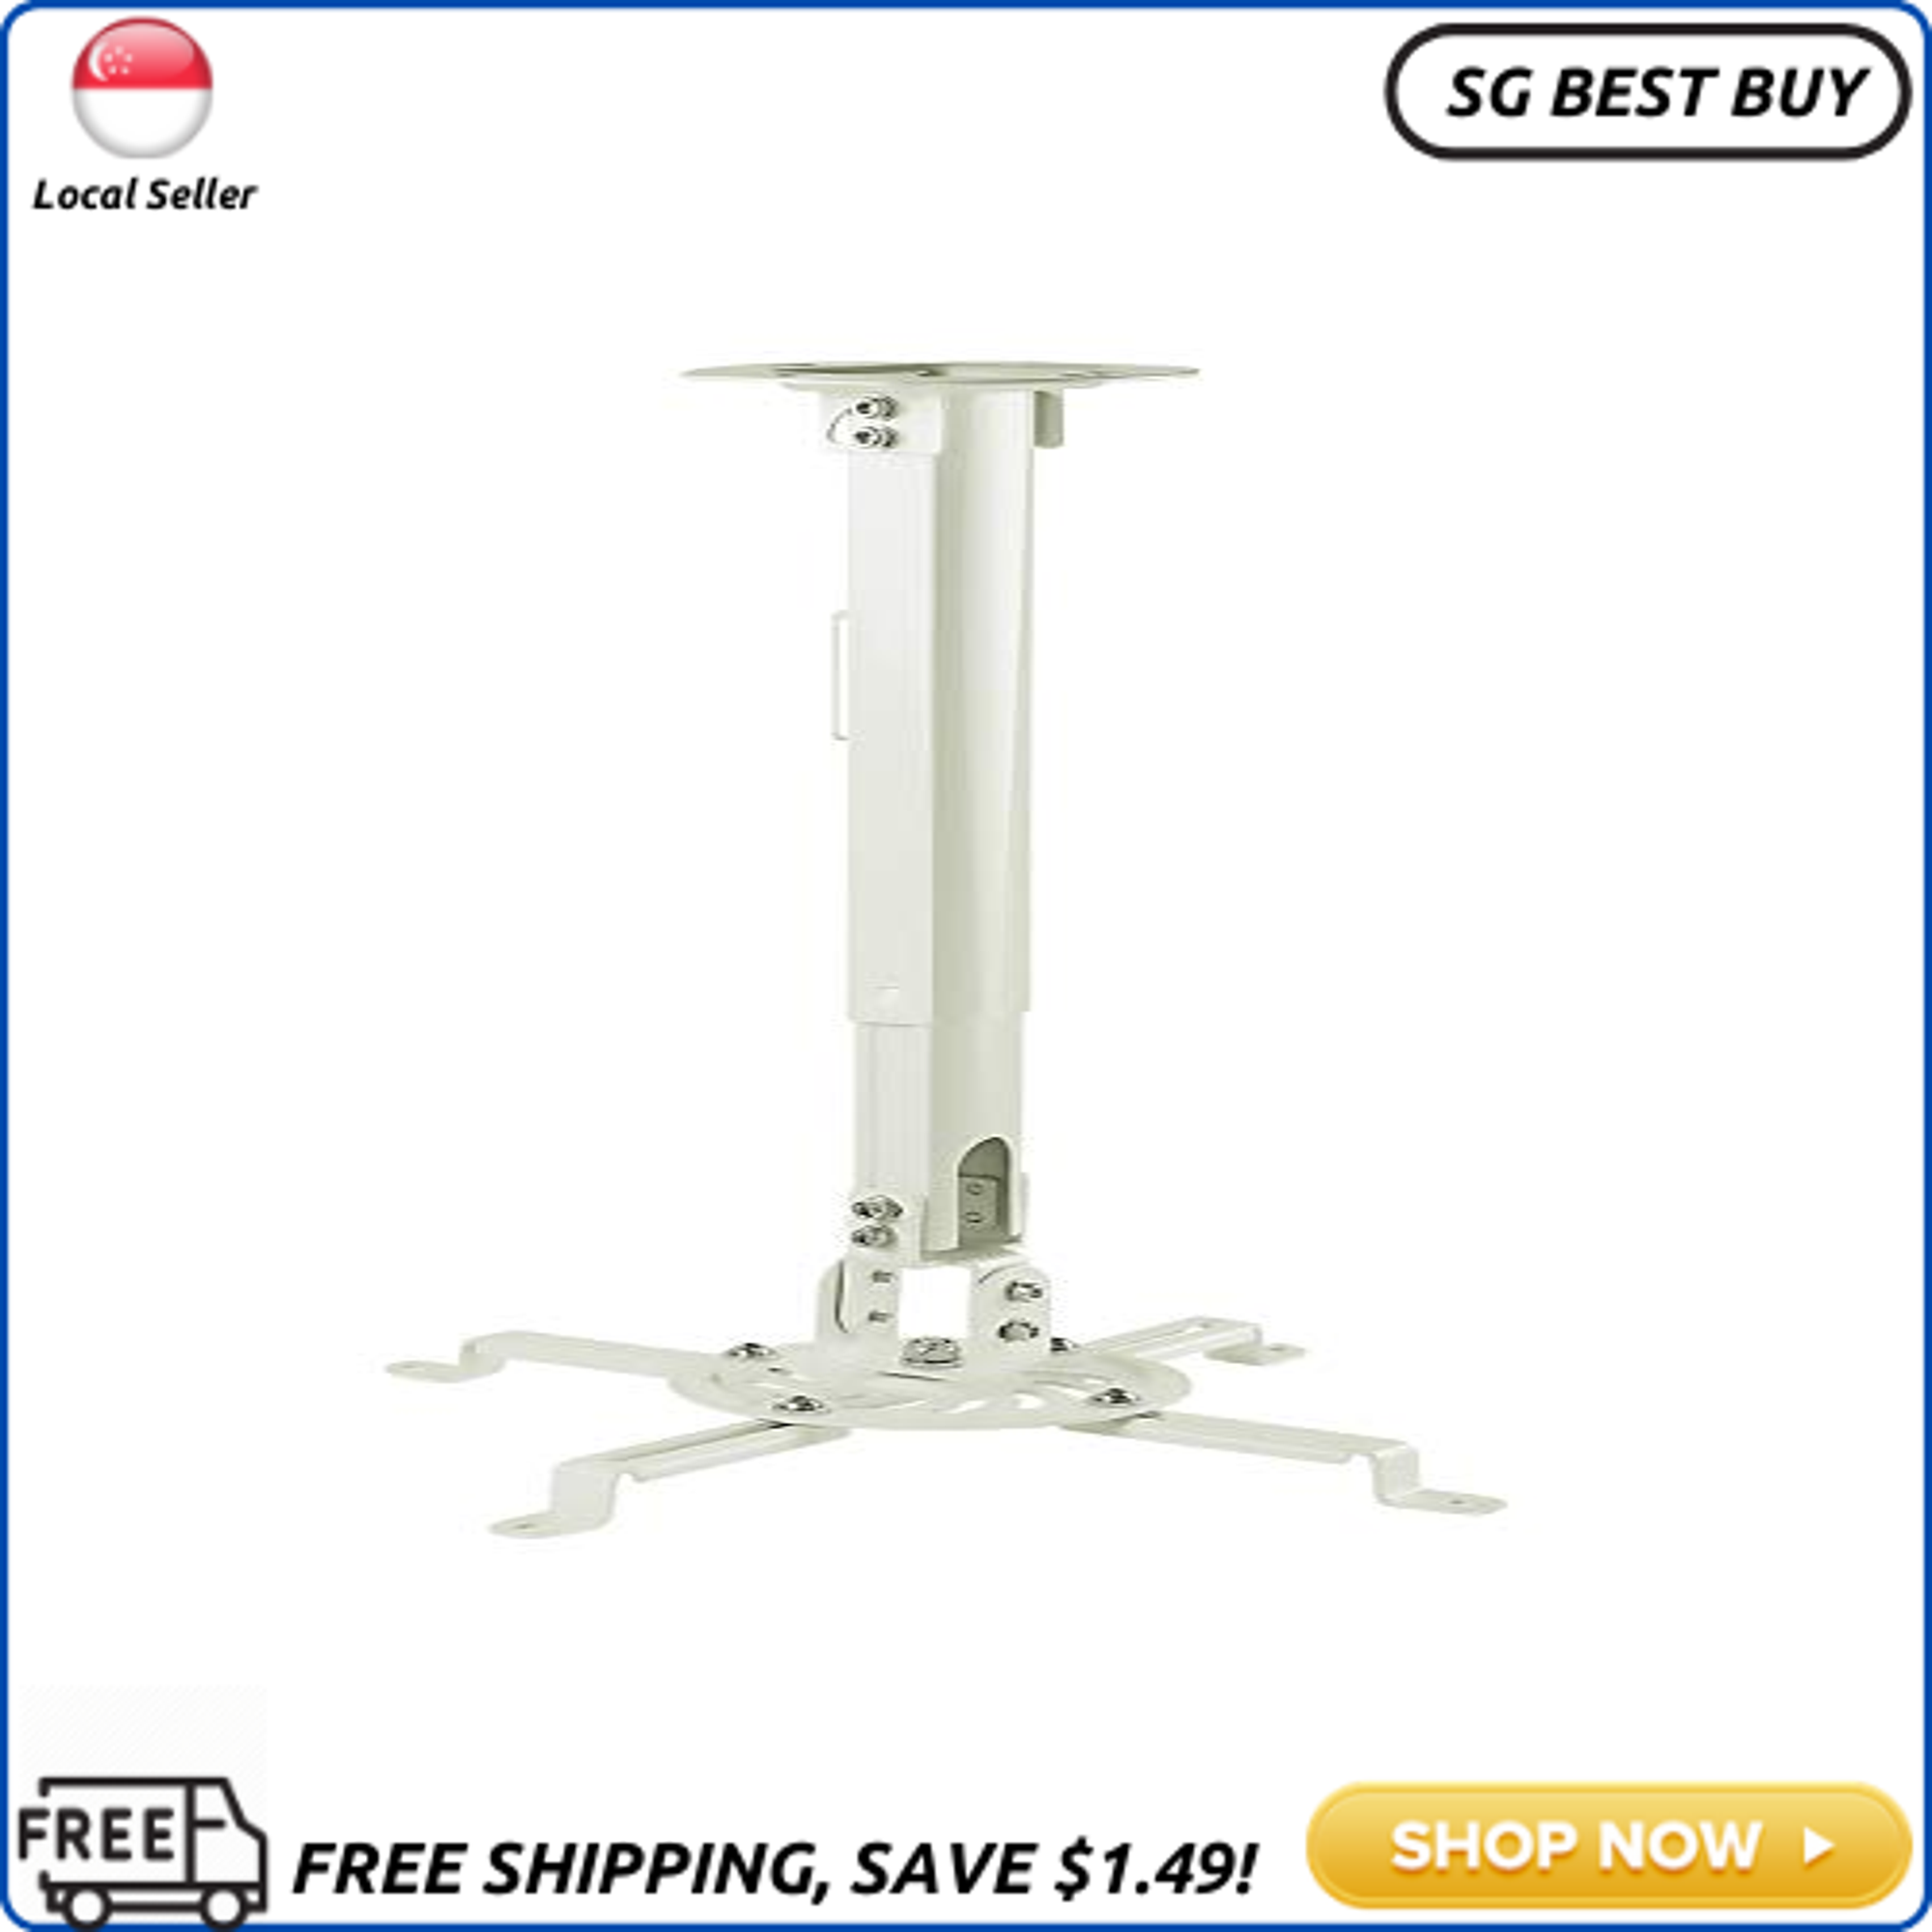 [SG SELLER]Mount-It! Ceiling Projector Mount Height Adjustable Universal Stand Fits Epson Optoma Benq Viewsonic Projectors, 30 Lbs Capacity (Medium)